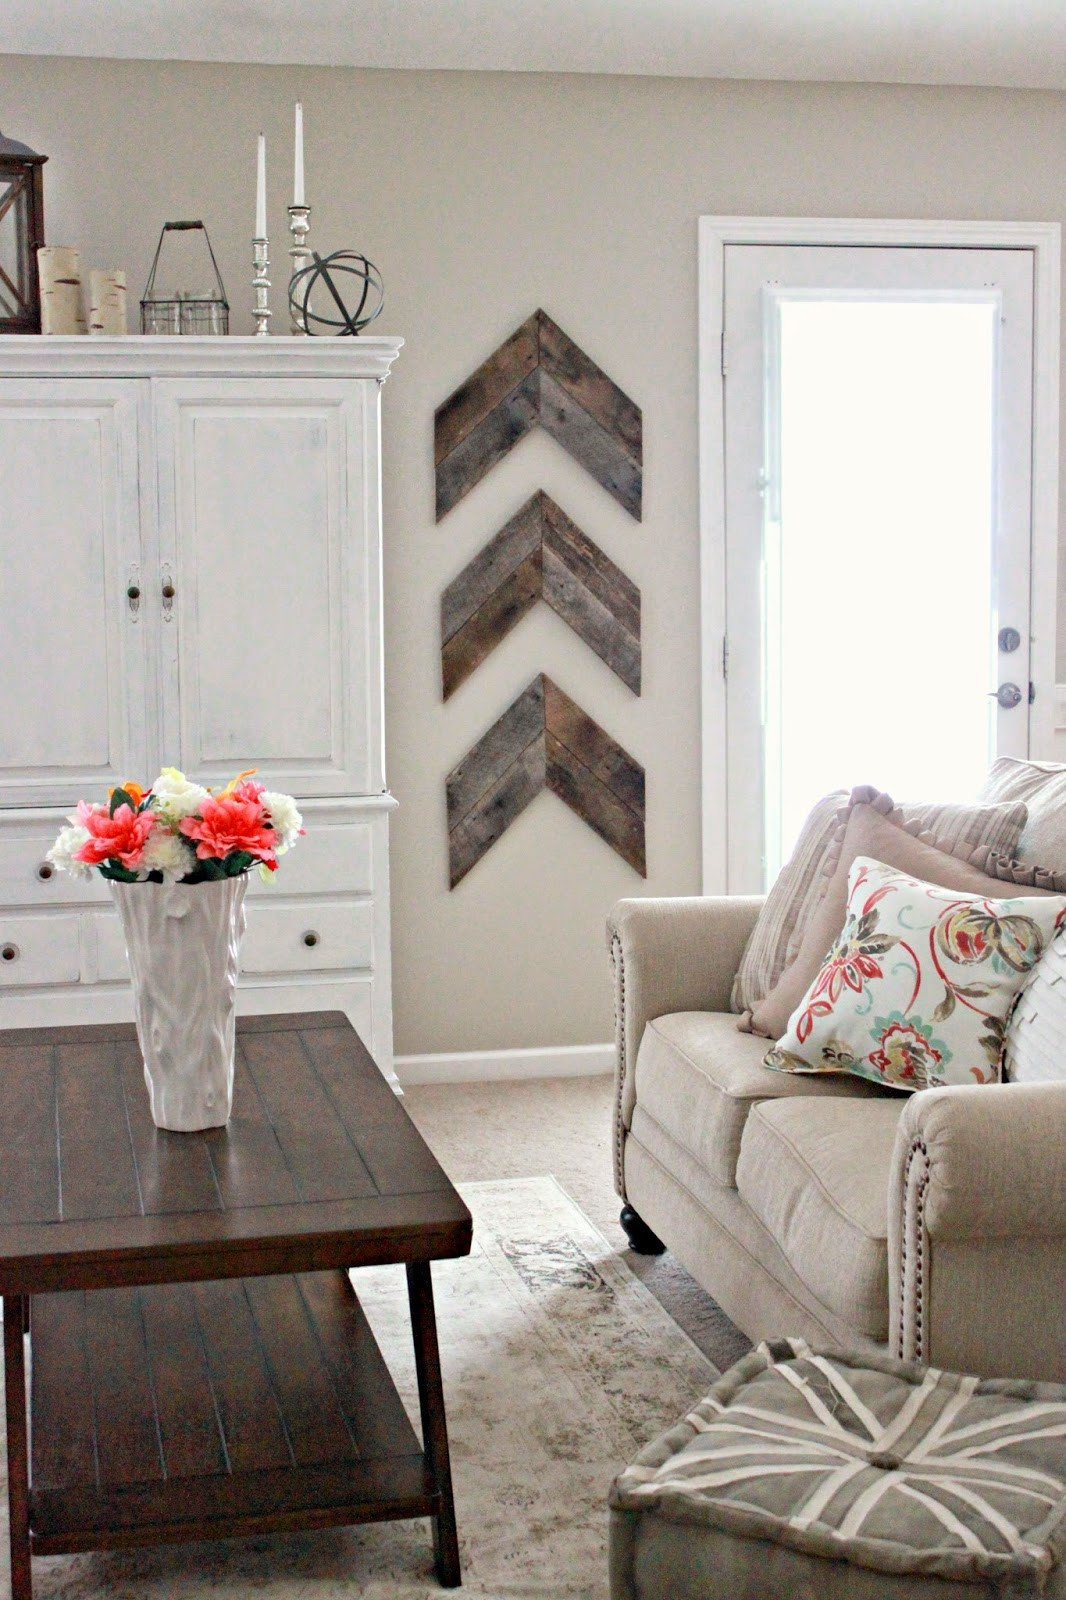 Living Room Wall Decorating Ideas 15 Striking Ways to Decorate with Arrows